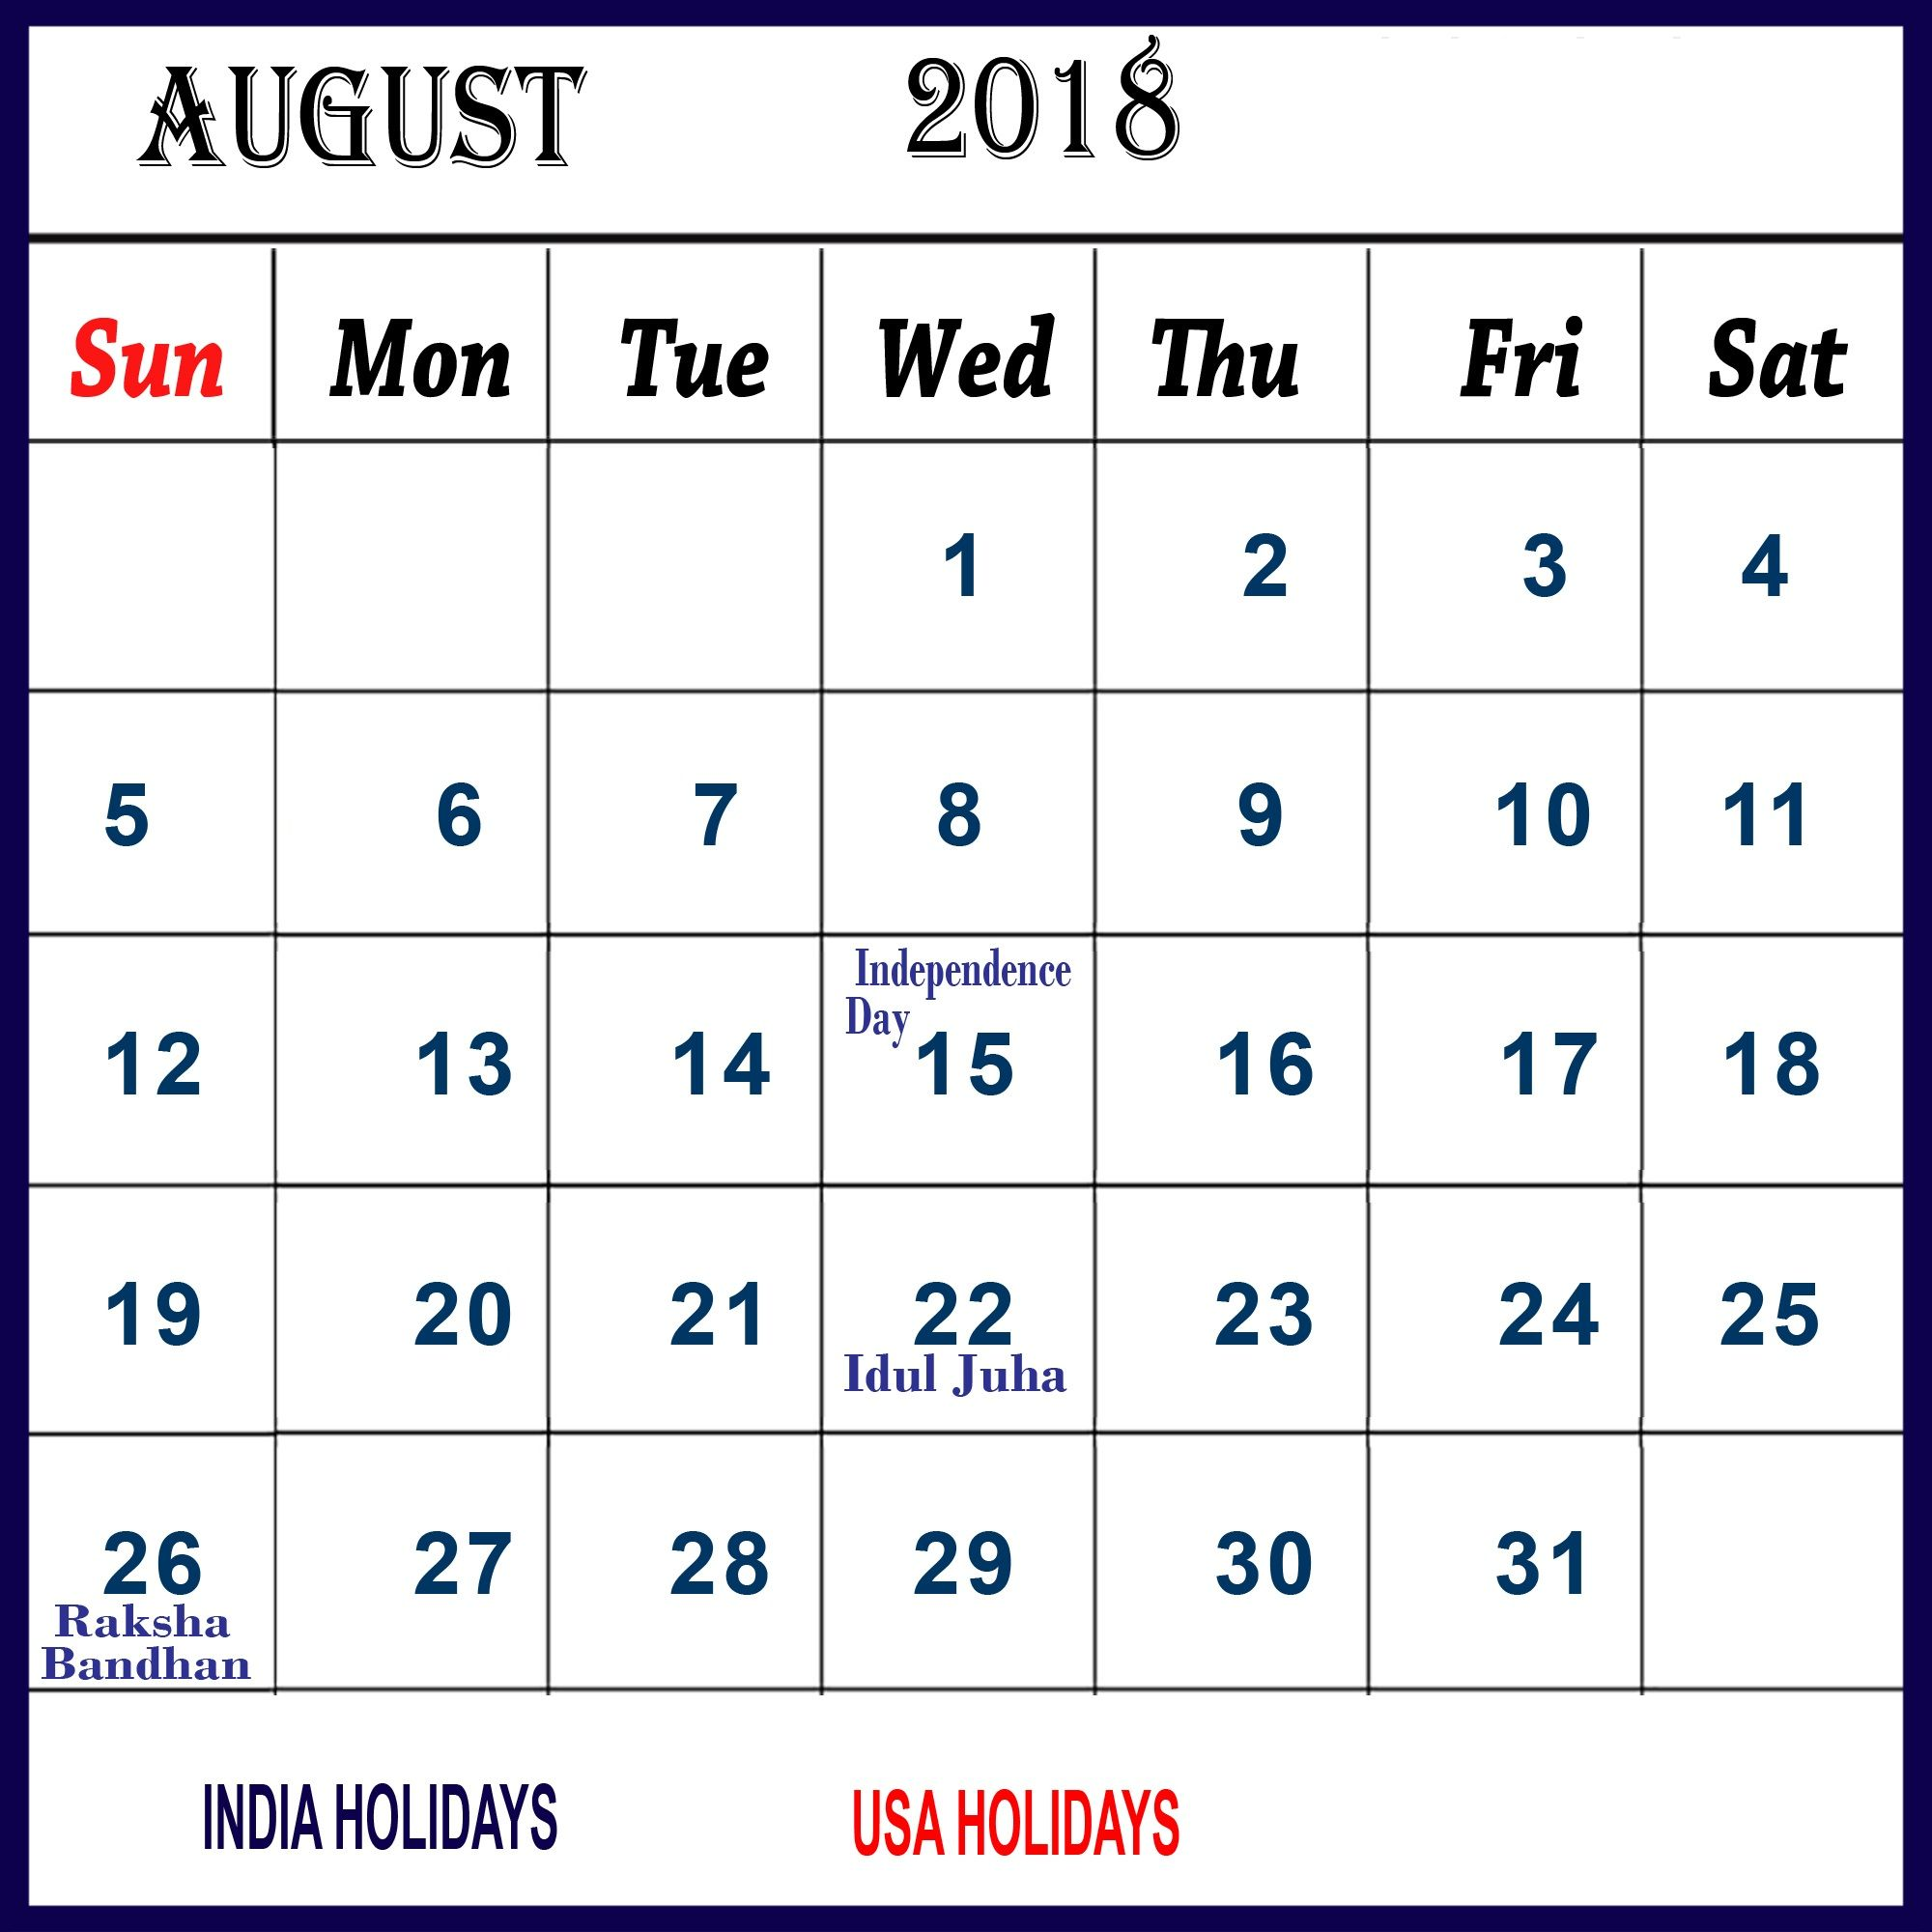 august calendar 2018 india with festivals calendar 2018 india calendar australia 2018 holiday calendar